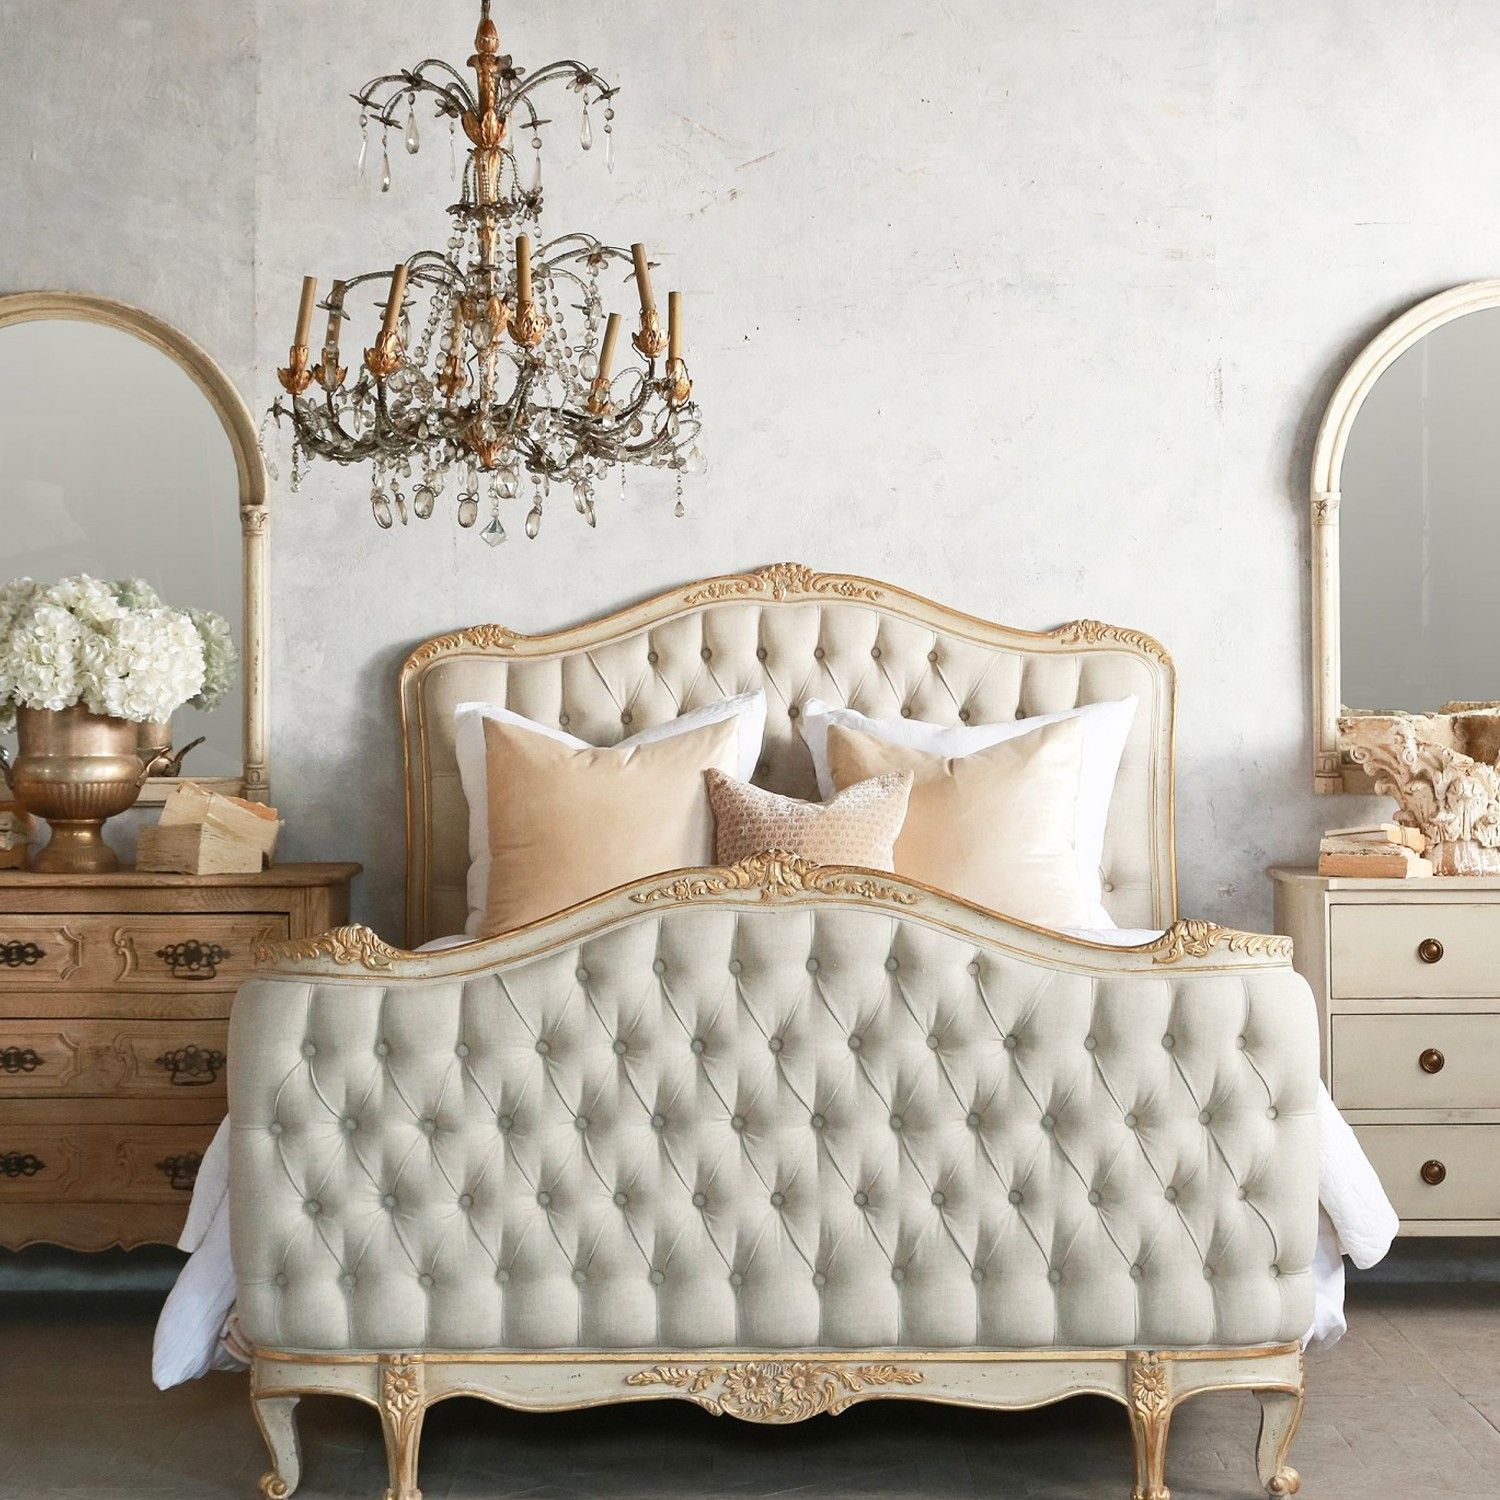 Antique Master Bedroom Ideas | www.miifotos.com